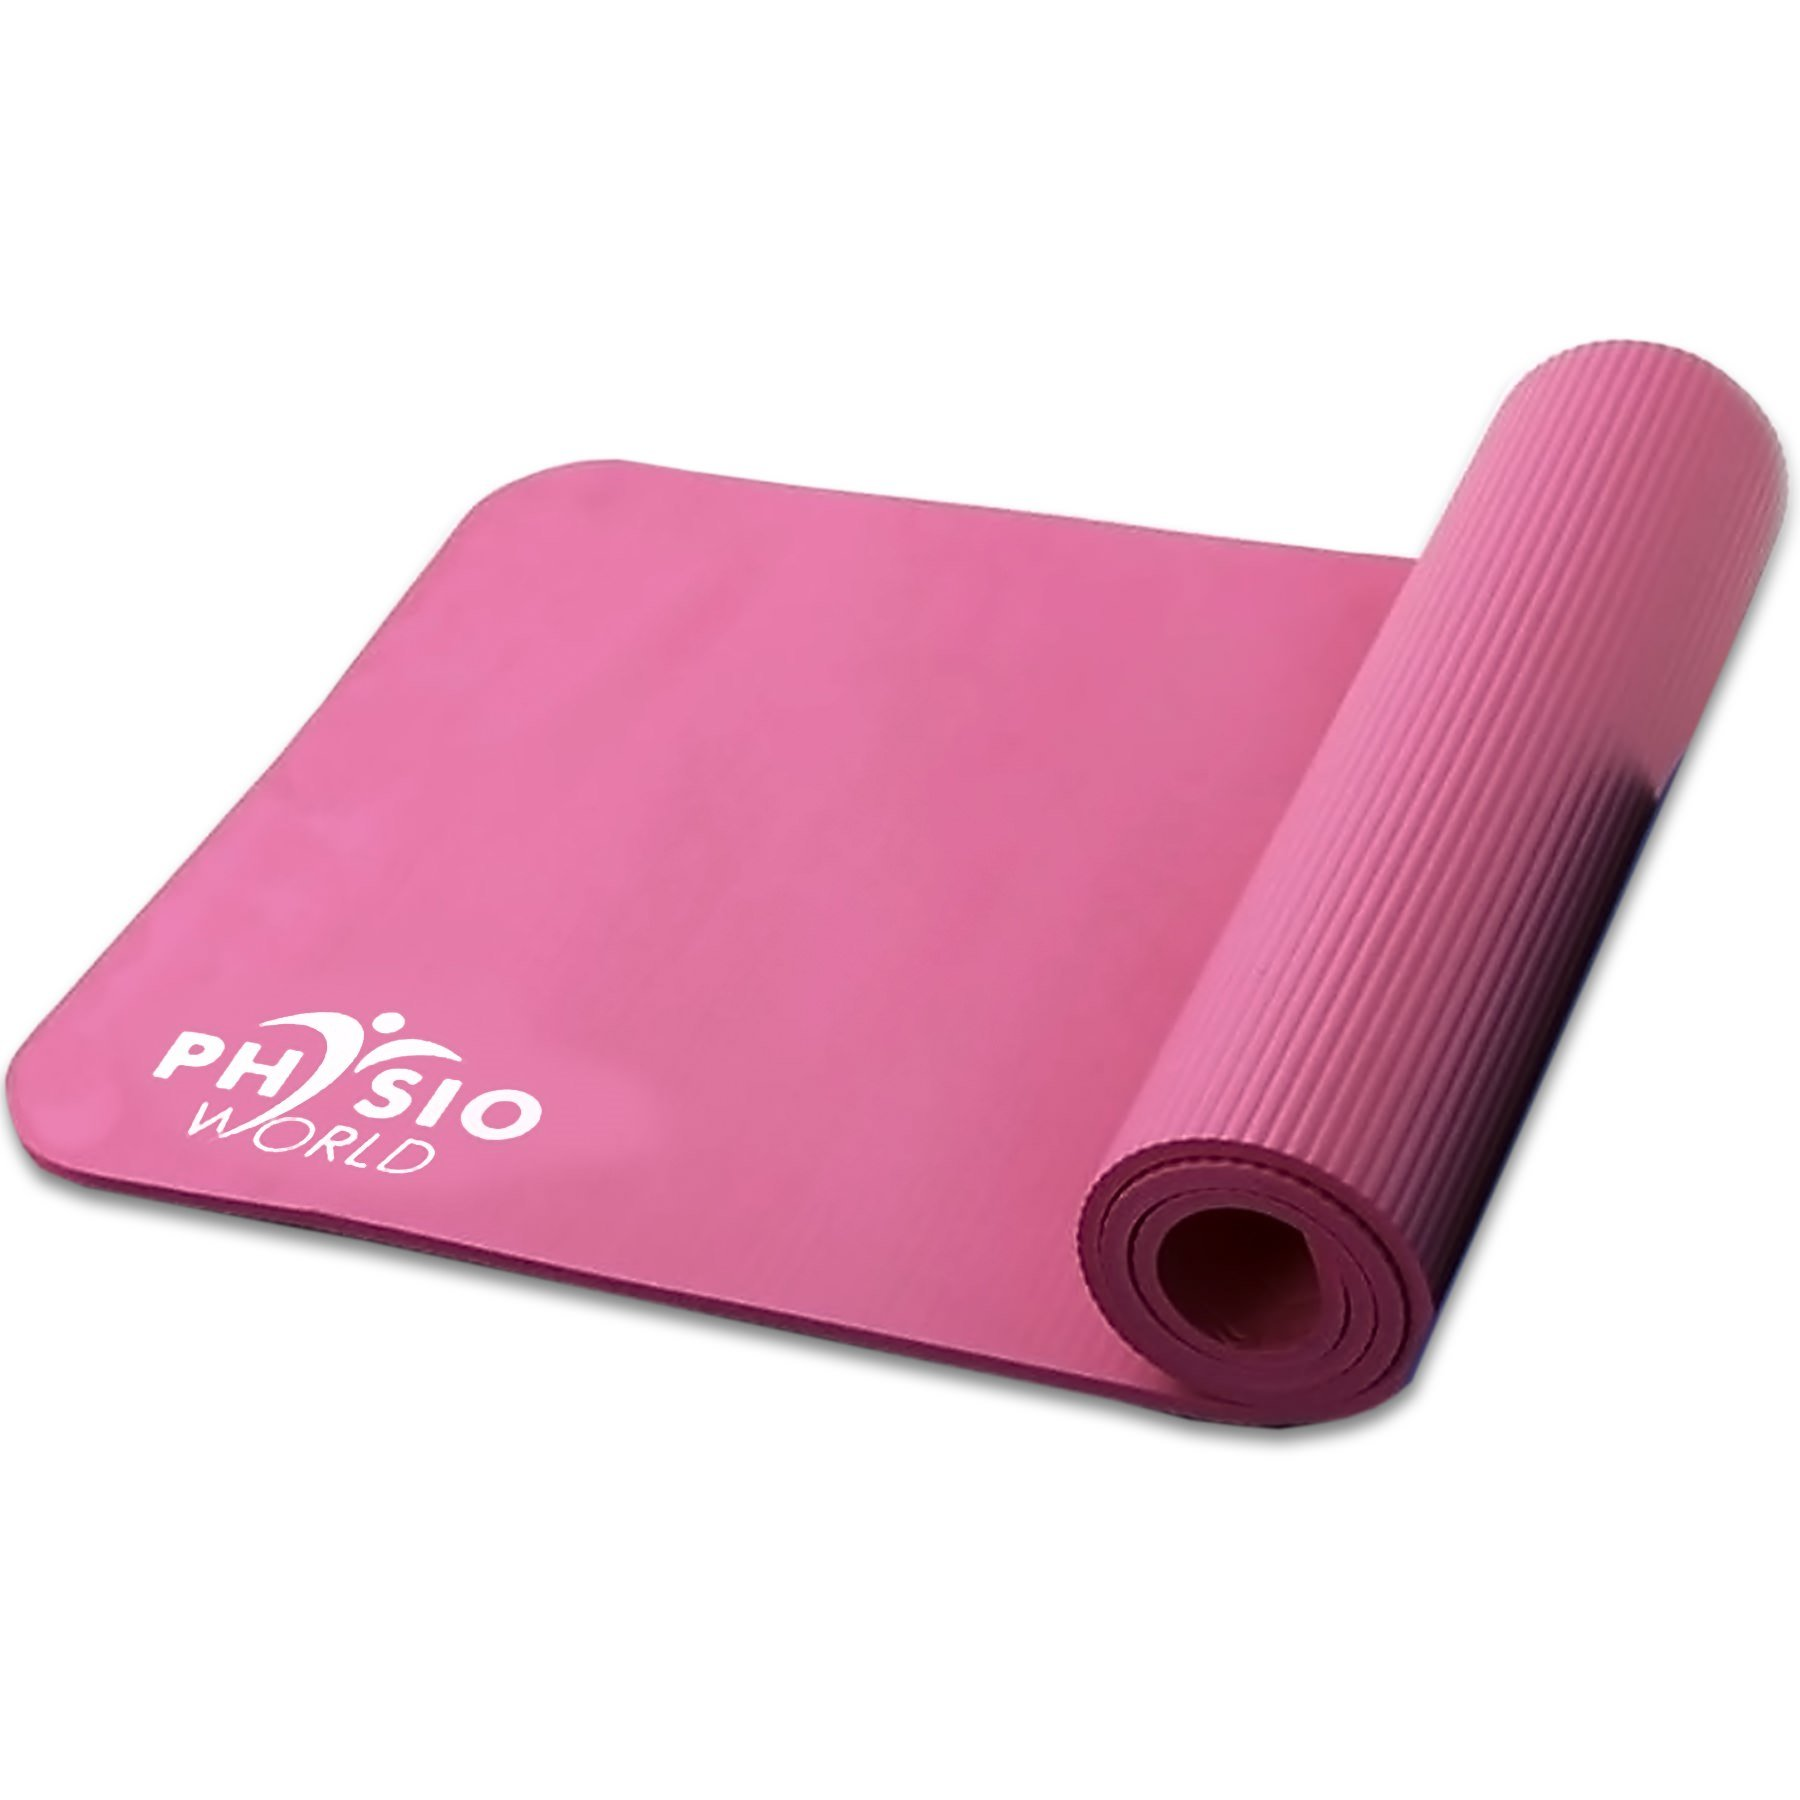 Physio World Thick Exercise Mat - 15mm Pink